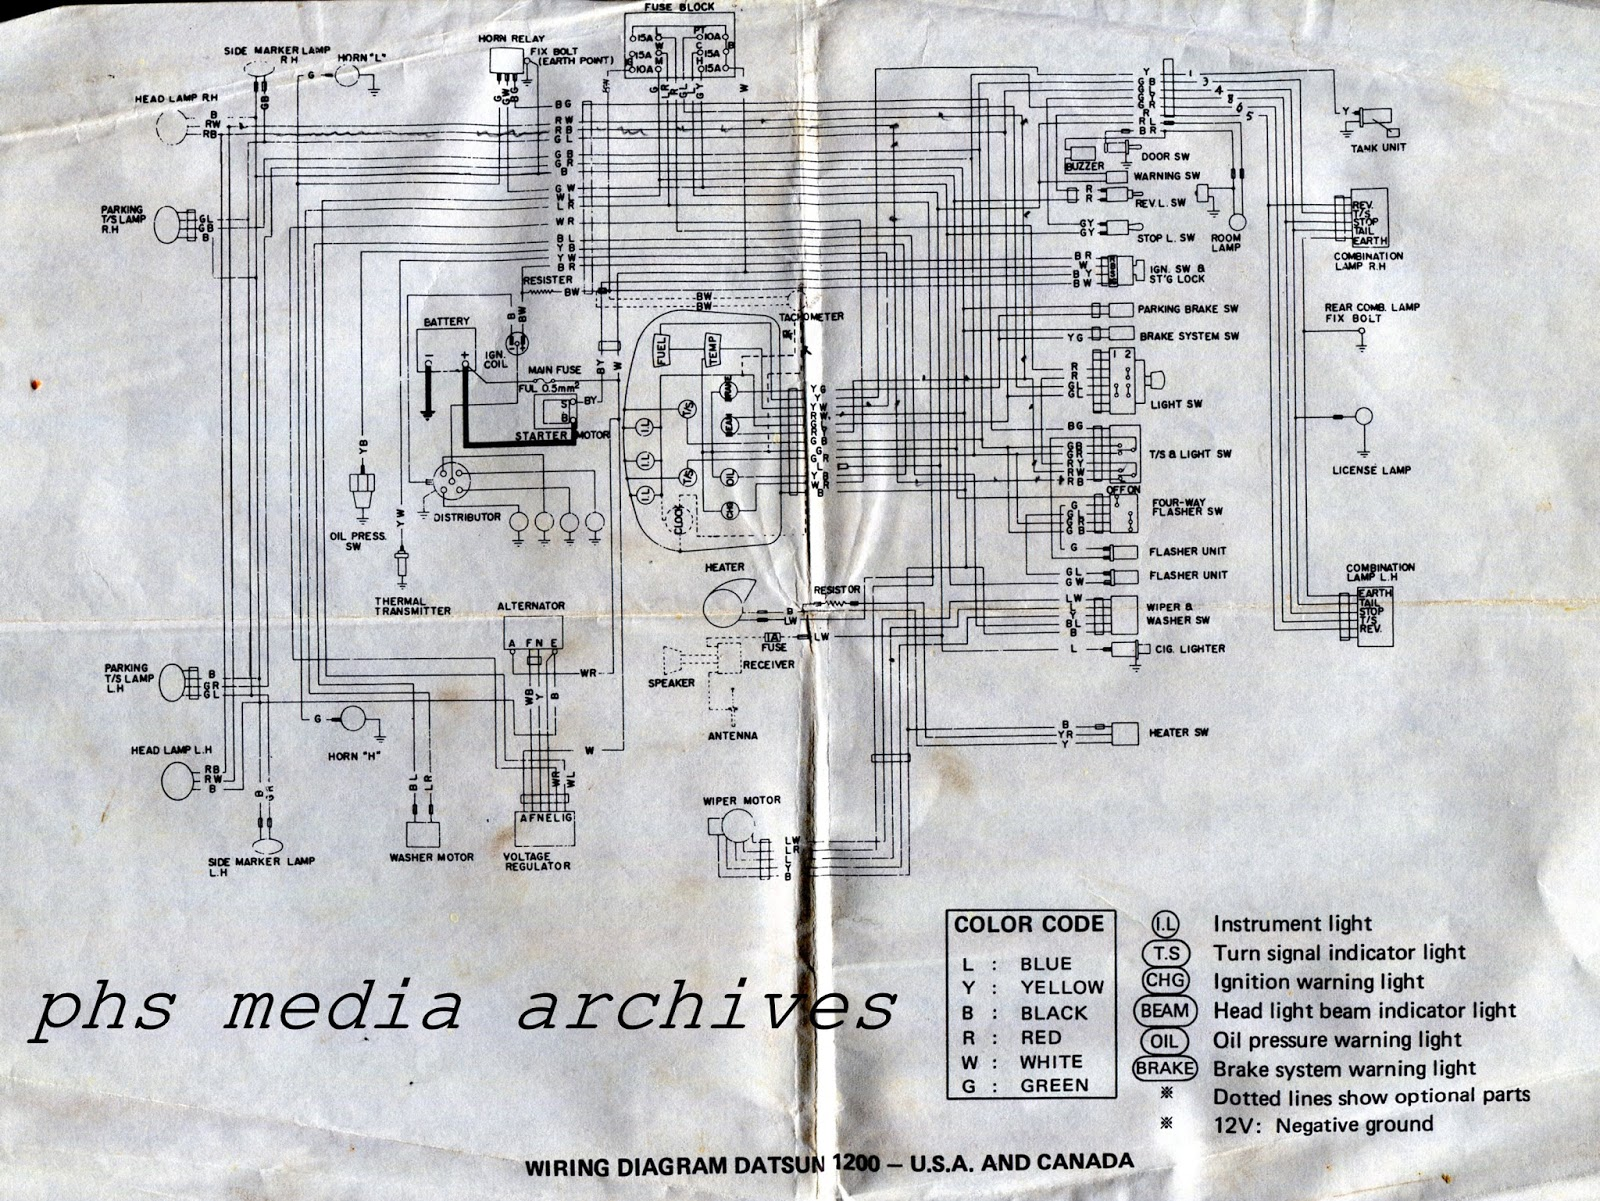 datsun%2B1200%2B%2Bwiring%2Ba753 phs tech series 1971 72 datsun 1200 wiring diagrams york stellar plus wiring diagram at mifinder.co